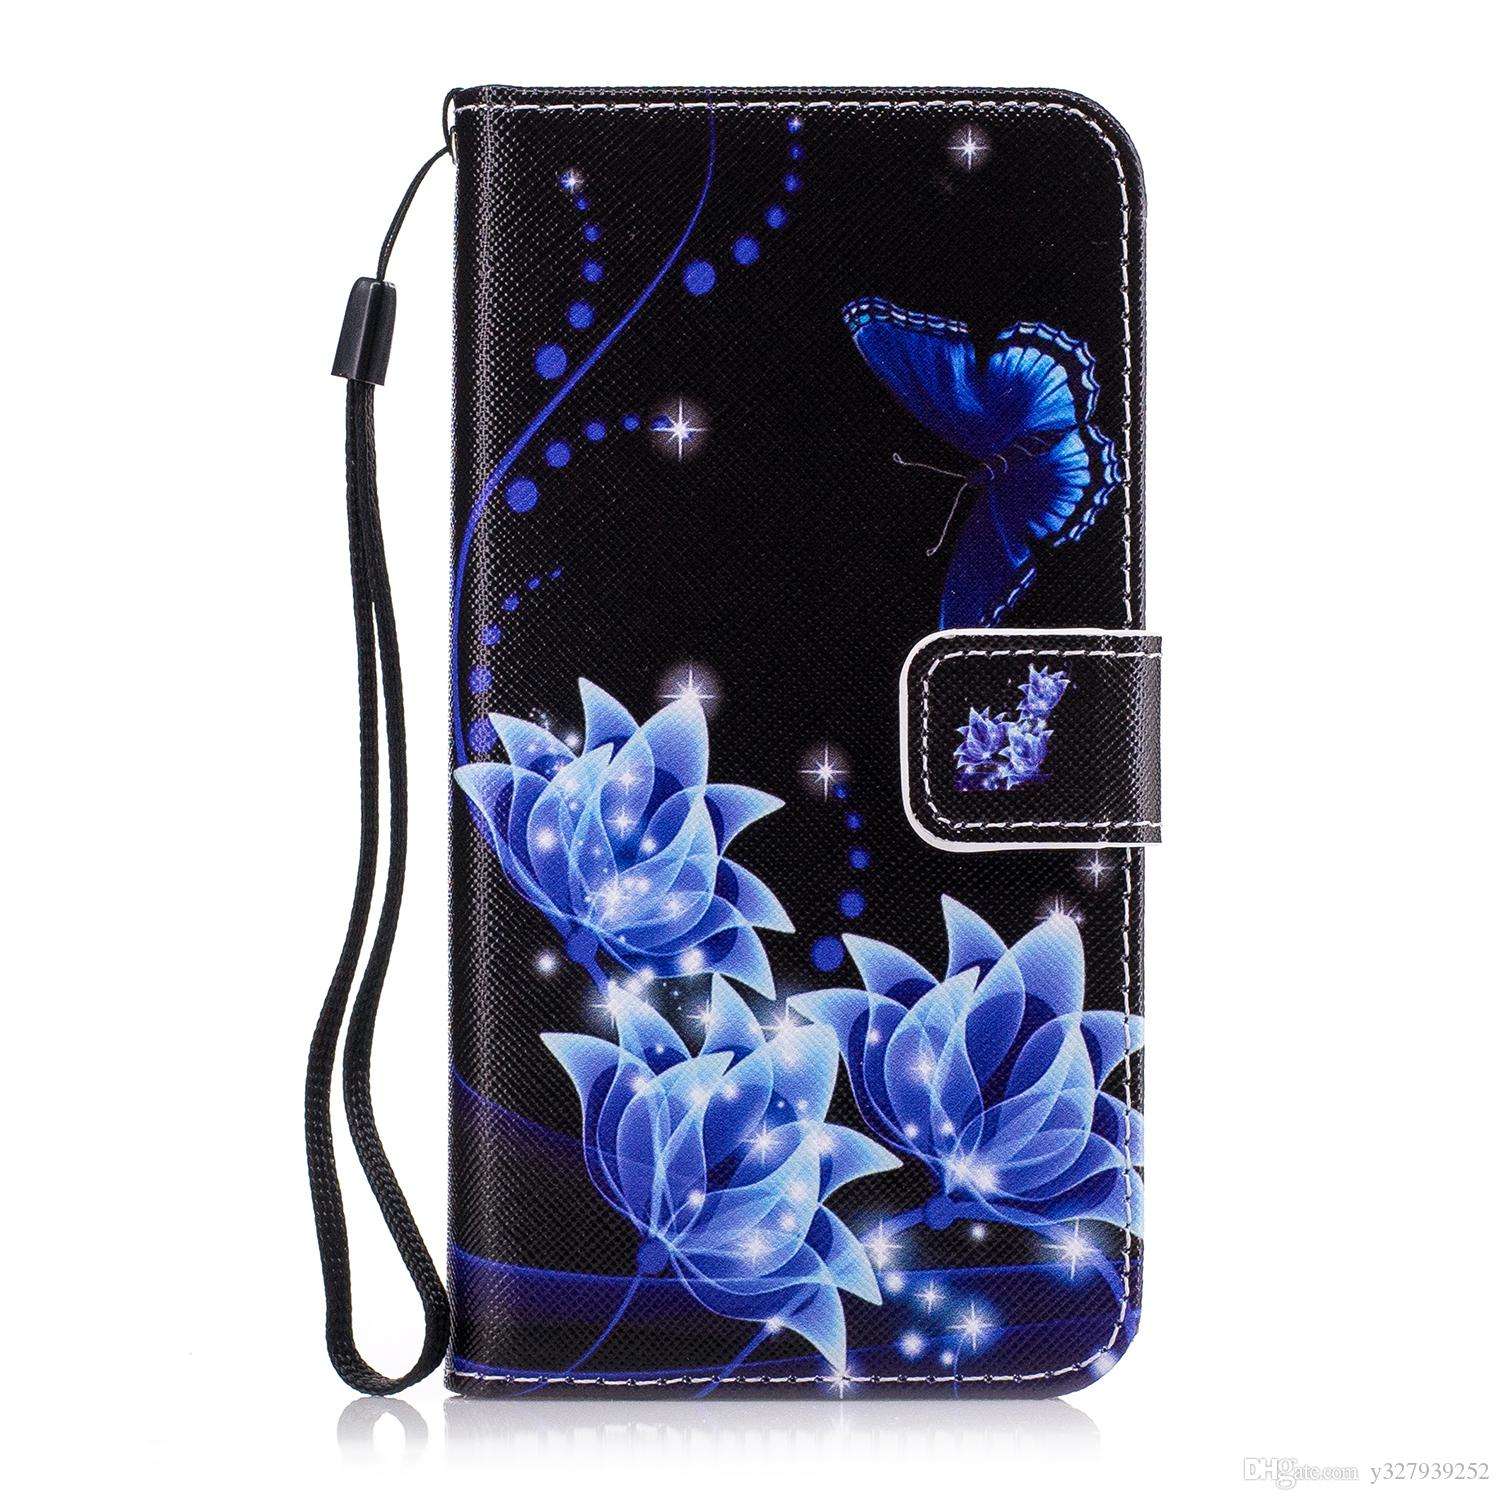 Case For Xiaomi Redmi 4a 4 A Redmi4a Wallet Card Slot Luxury Painted Flip Phone Leather Cover For Xiaomi Redmi A4 Red Mi 4a Redmi4 A Cell Phone Cases Cheap